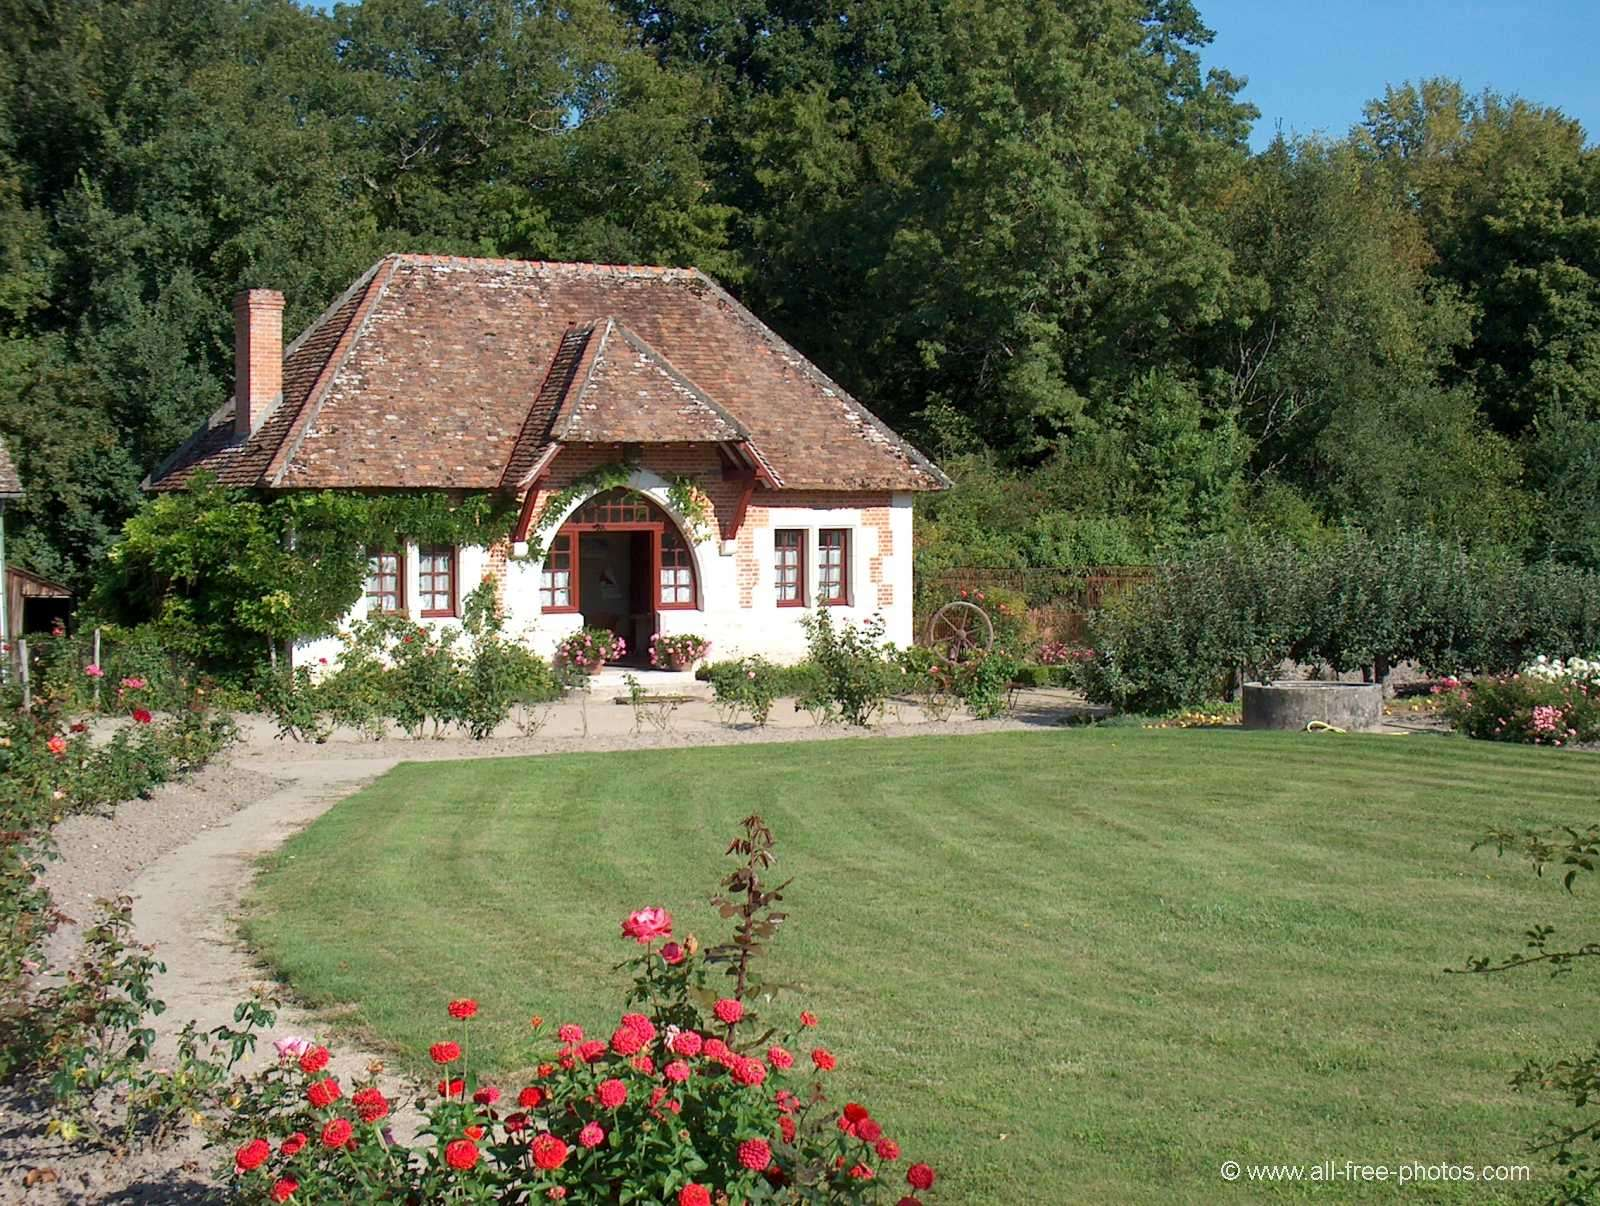 Castle du Moulin (Mill) - garden house - Lassay sur Croisne - France